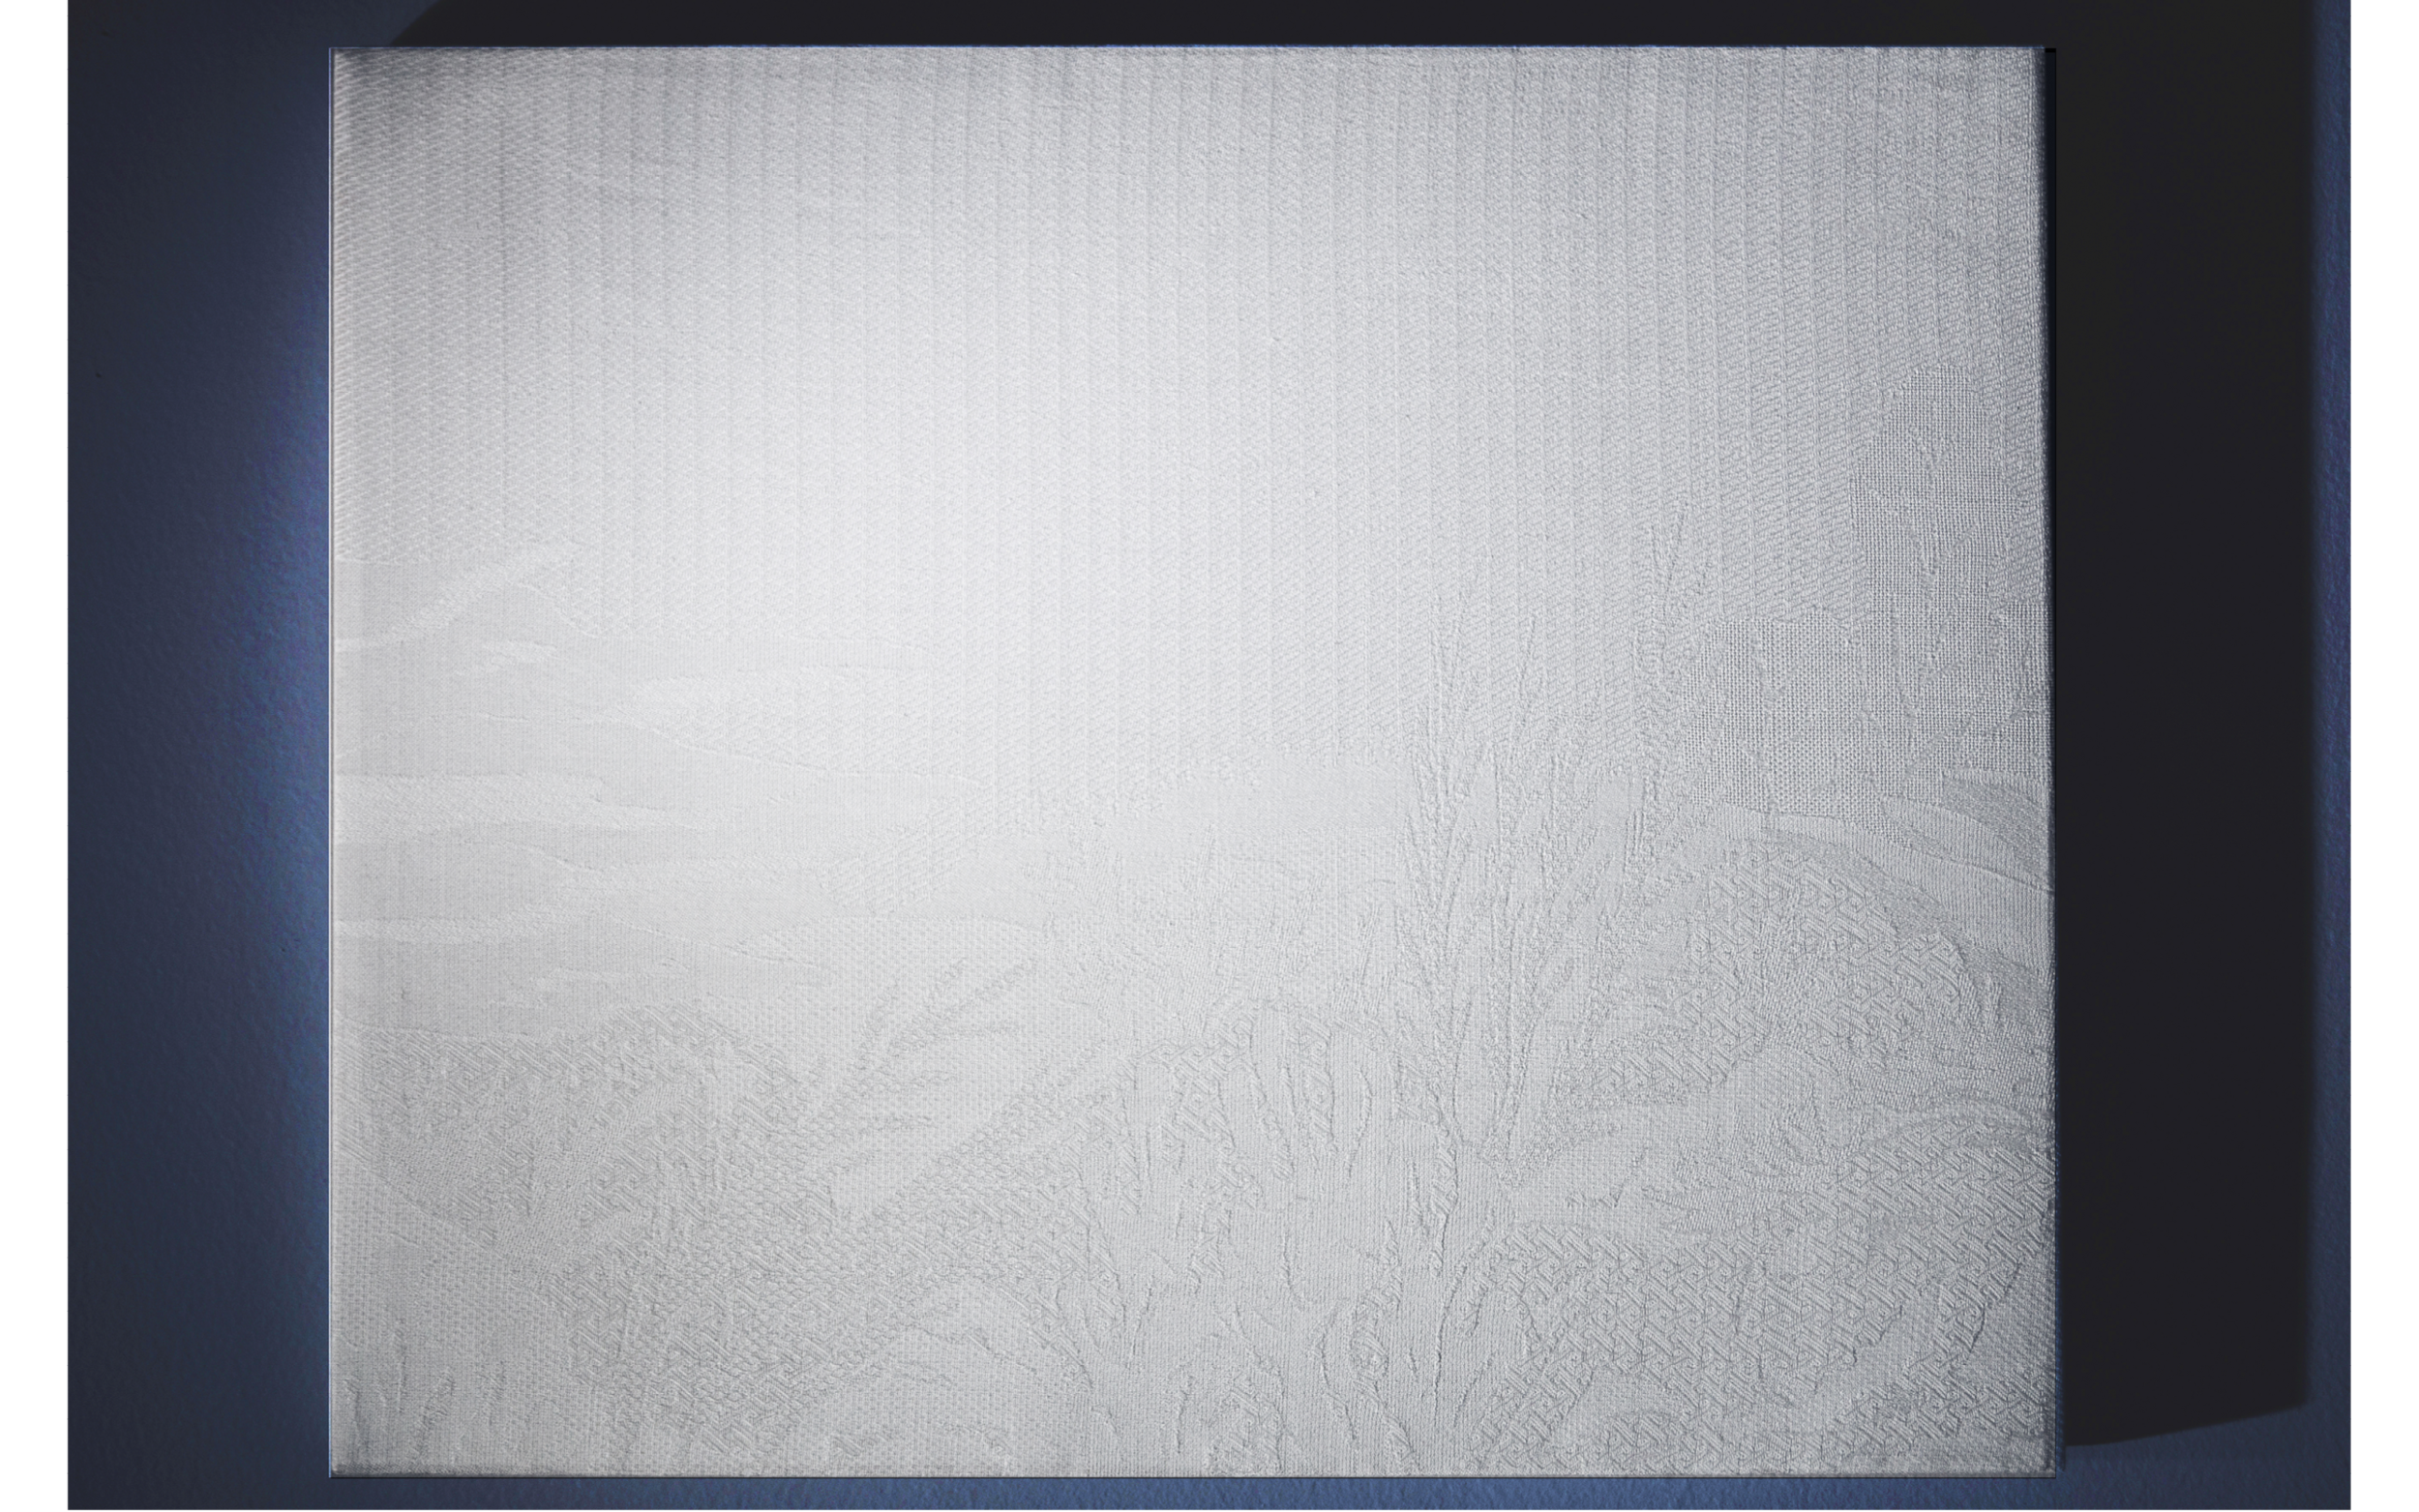 bleached 1280 x 8004.png